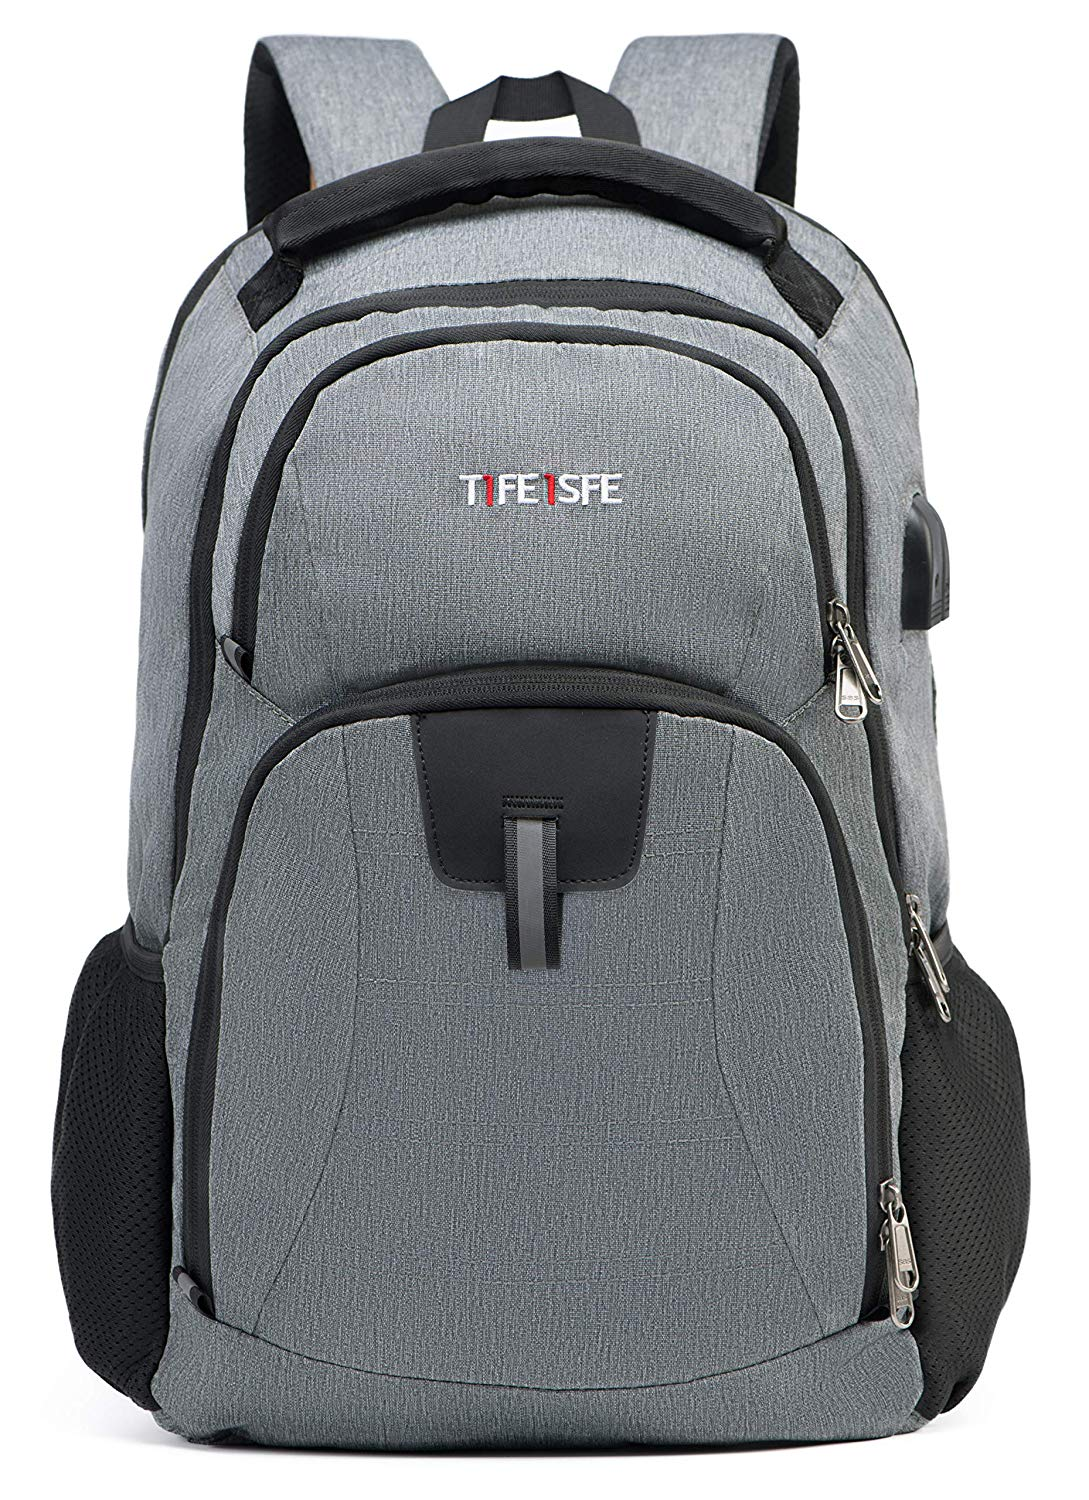 Top Picked Extra Large Backpack by Azonvisor